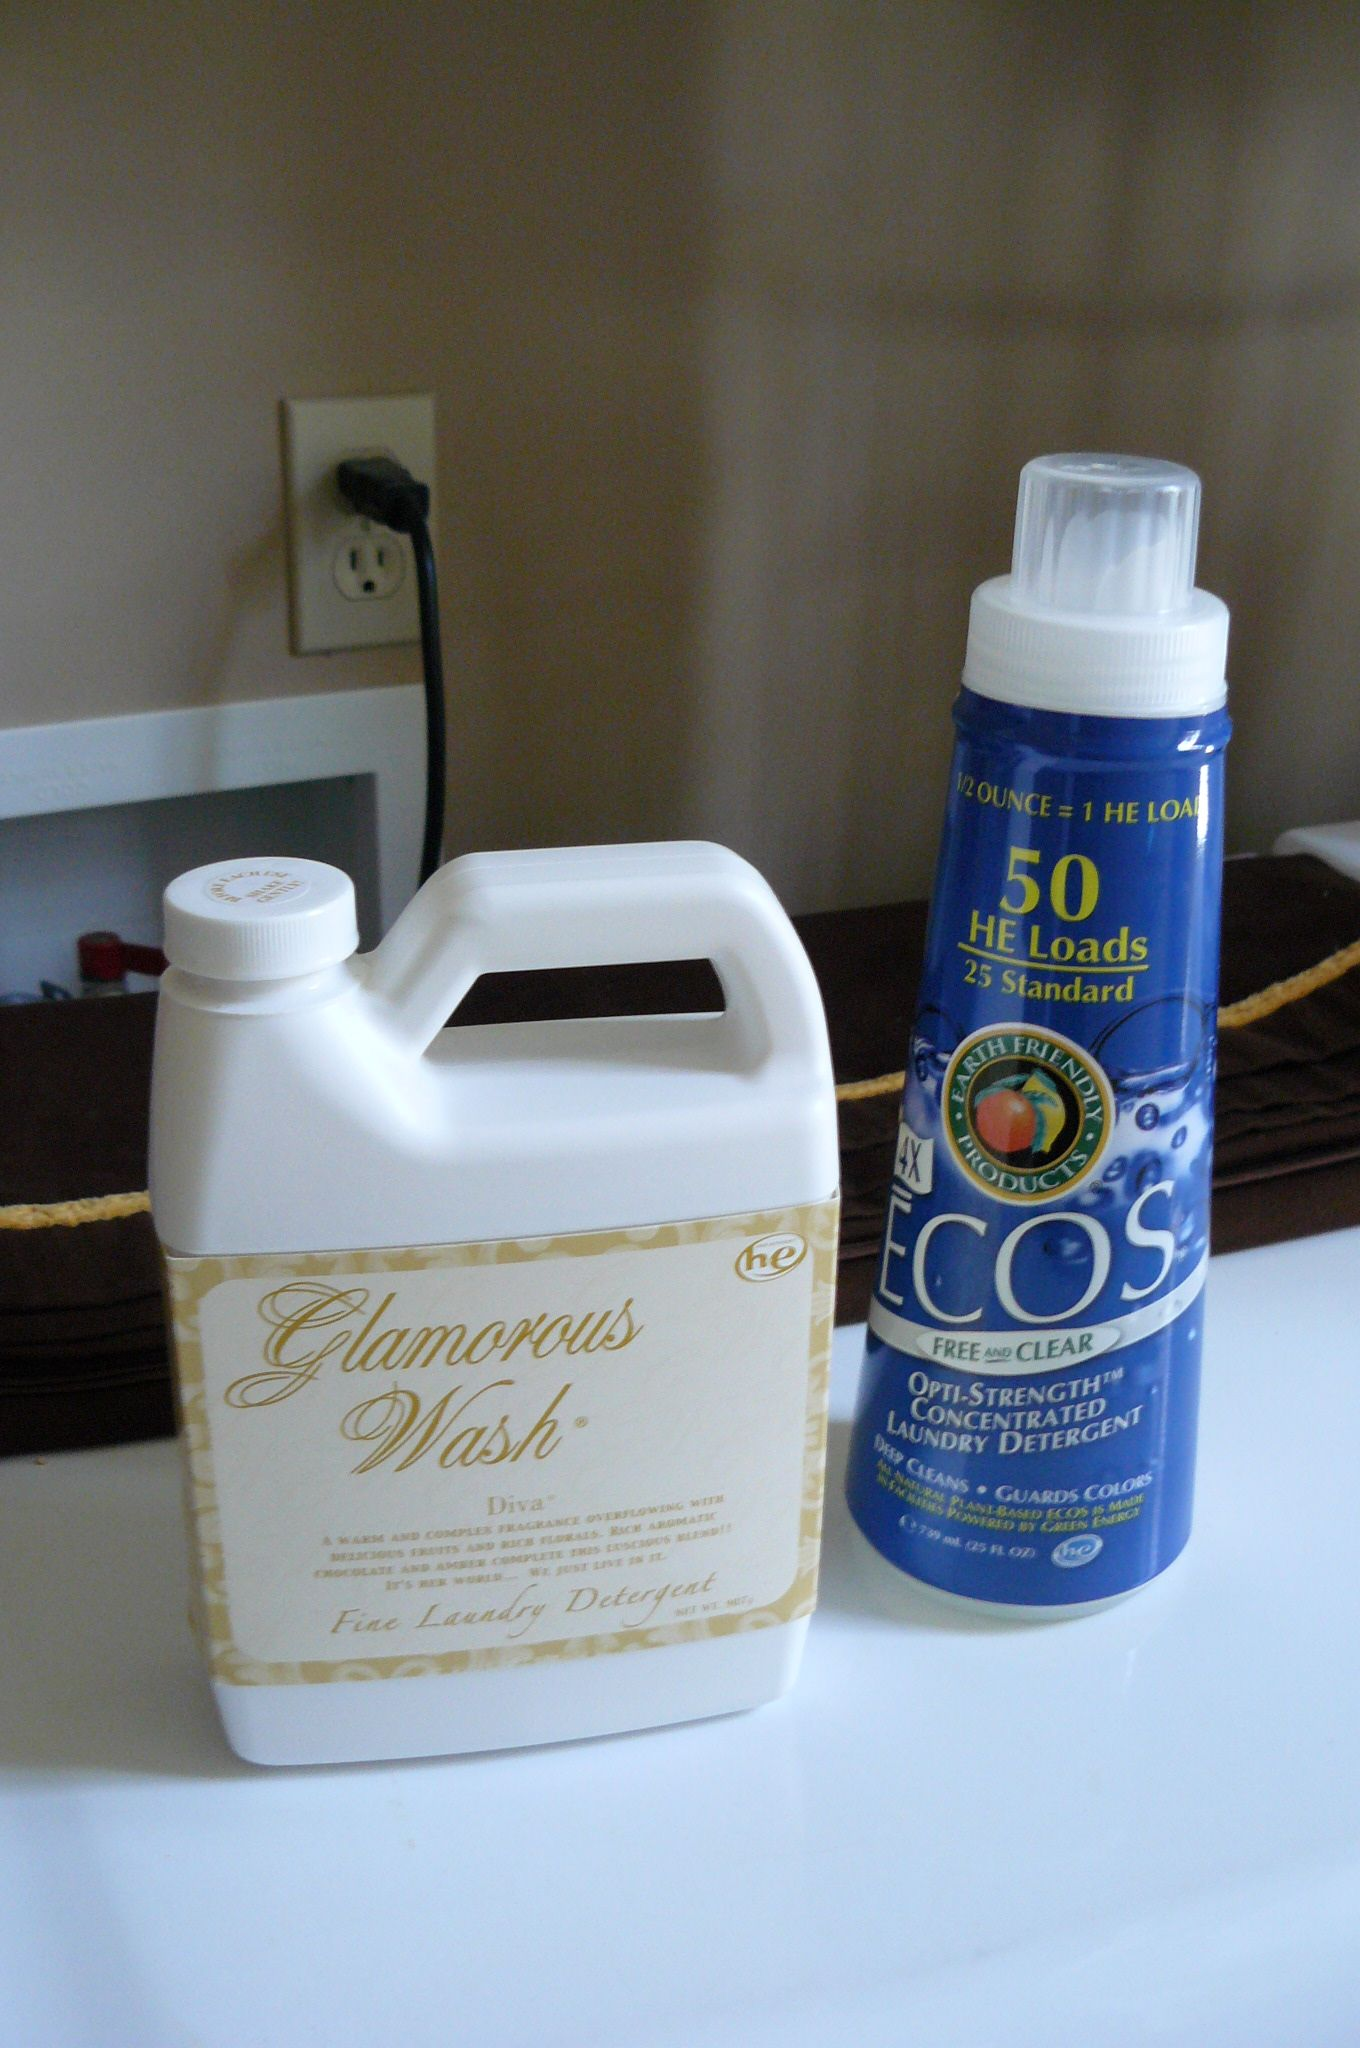 Pin By Susan Blexrud On For The Home Diva Laundry Detergent Diy